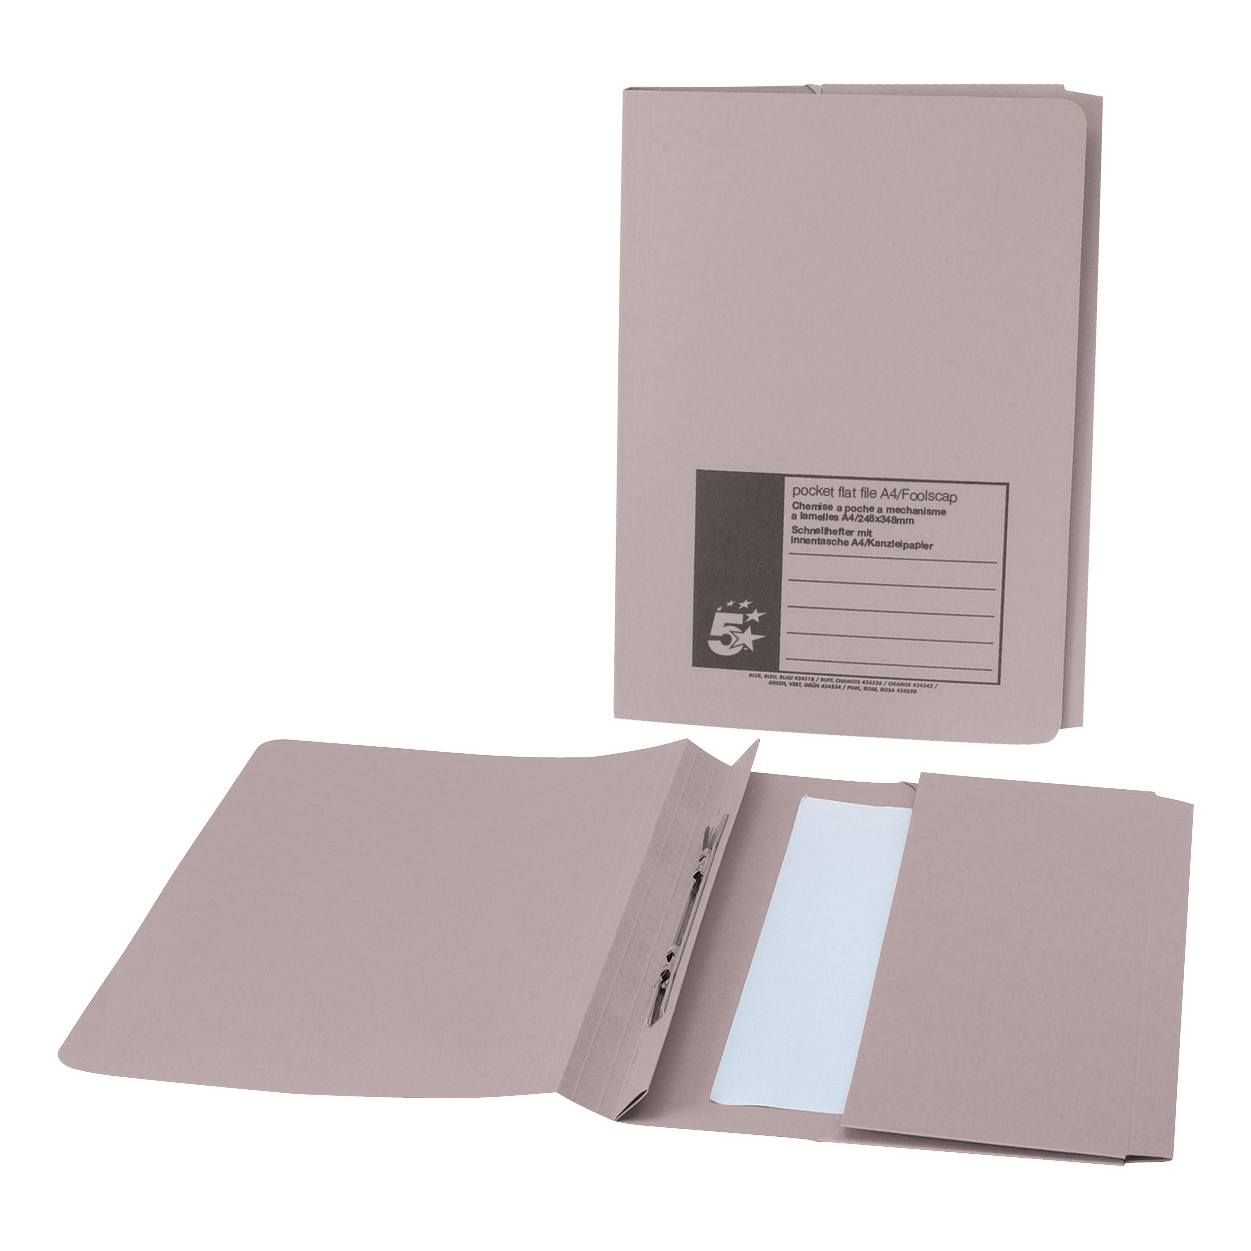 5 Star Office Flat Bar Pocket File Recycled Manilla 285gsm Capacity 200 Sheets Foolscap Buff Pack 25